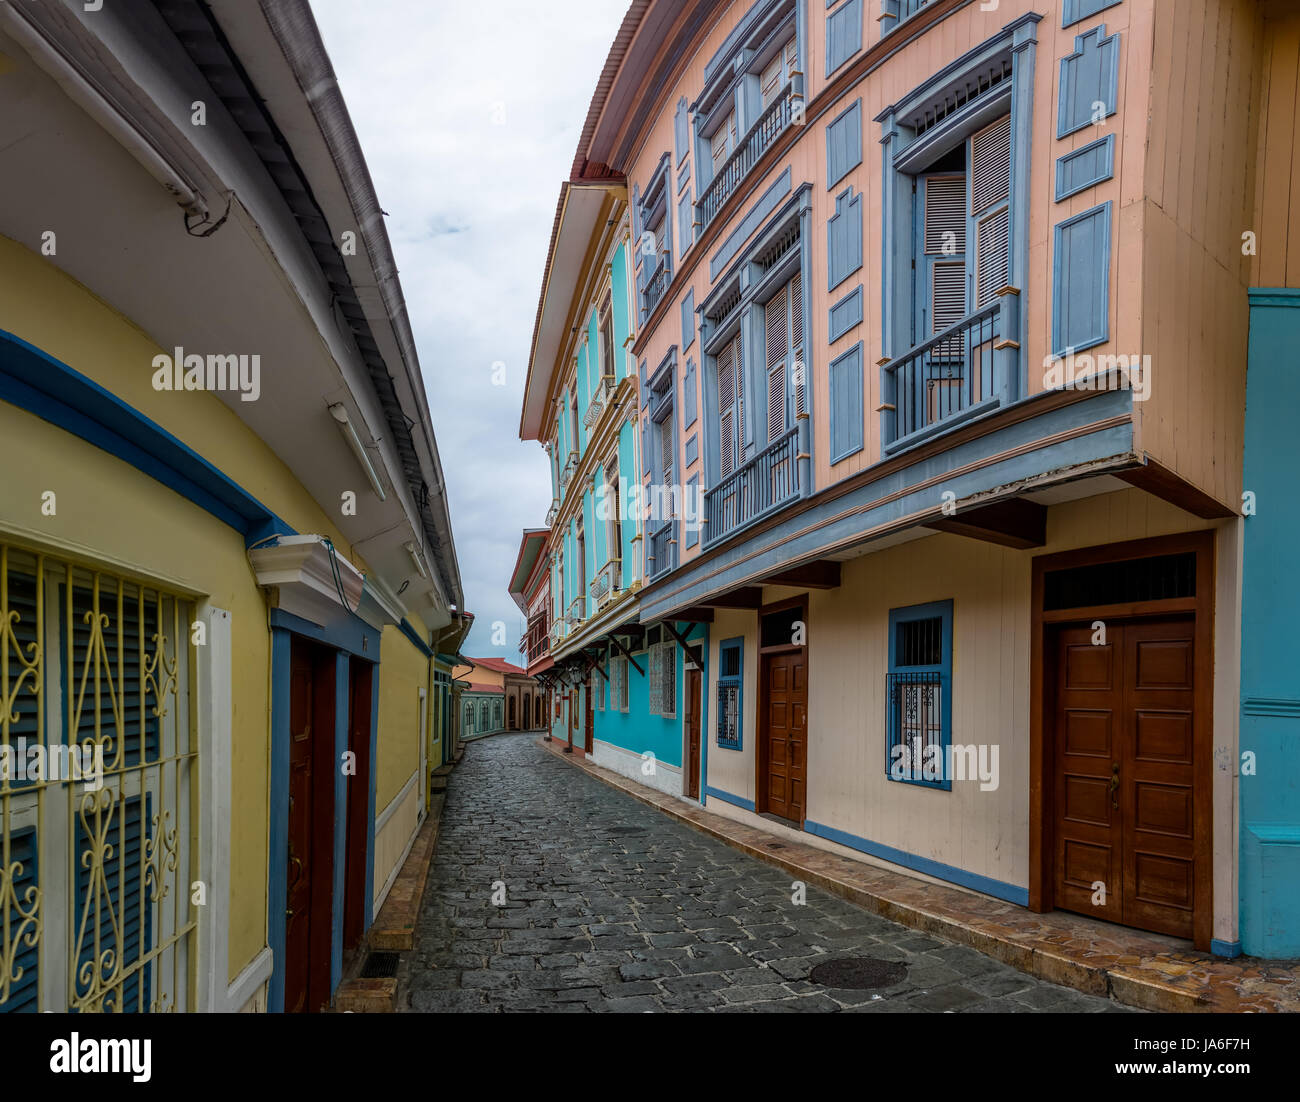 Buildings of Las Penas District on the base of Santa Ana Hill - Guayaquil, Ecuador - Stock Image